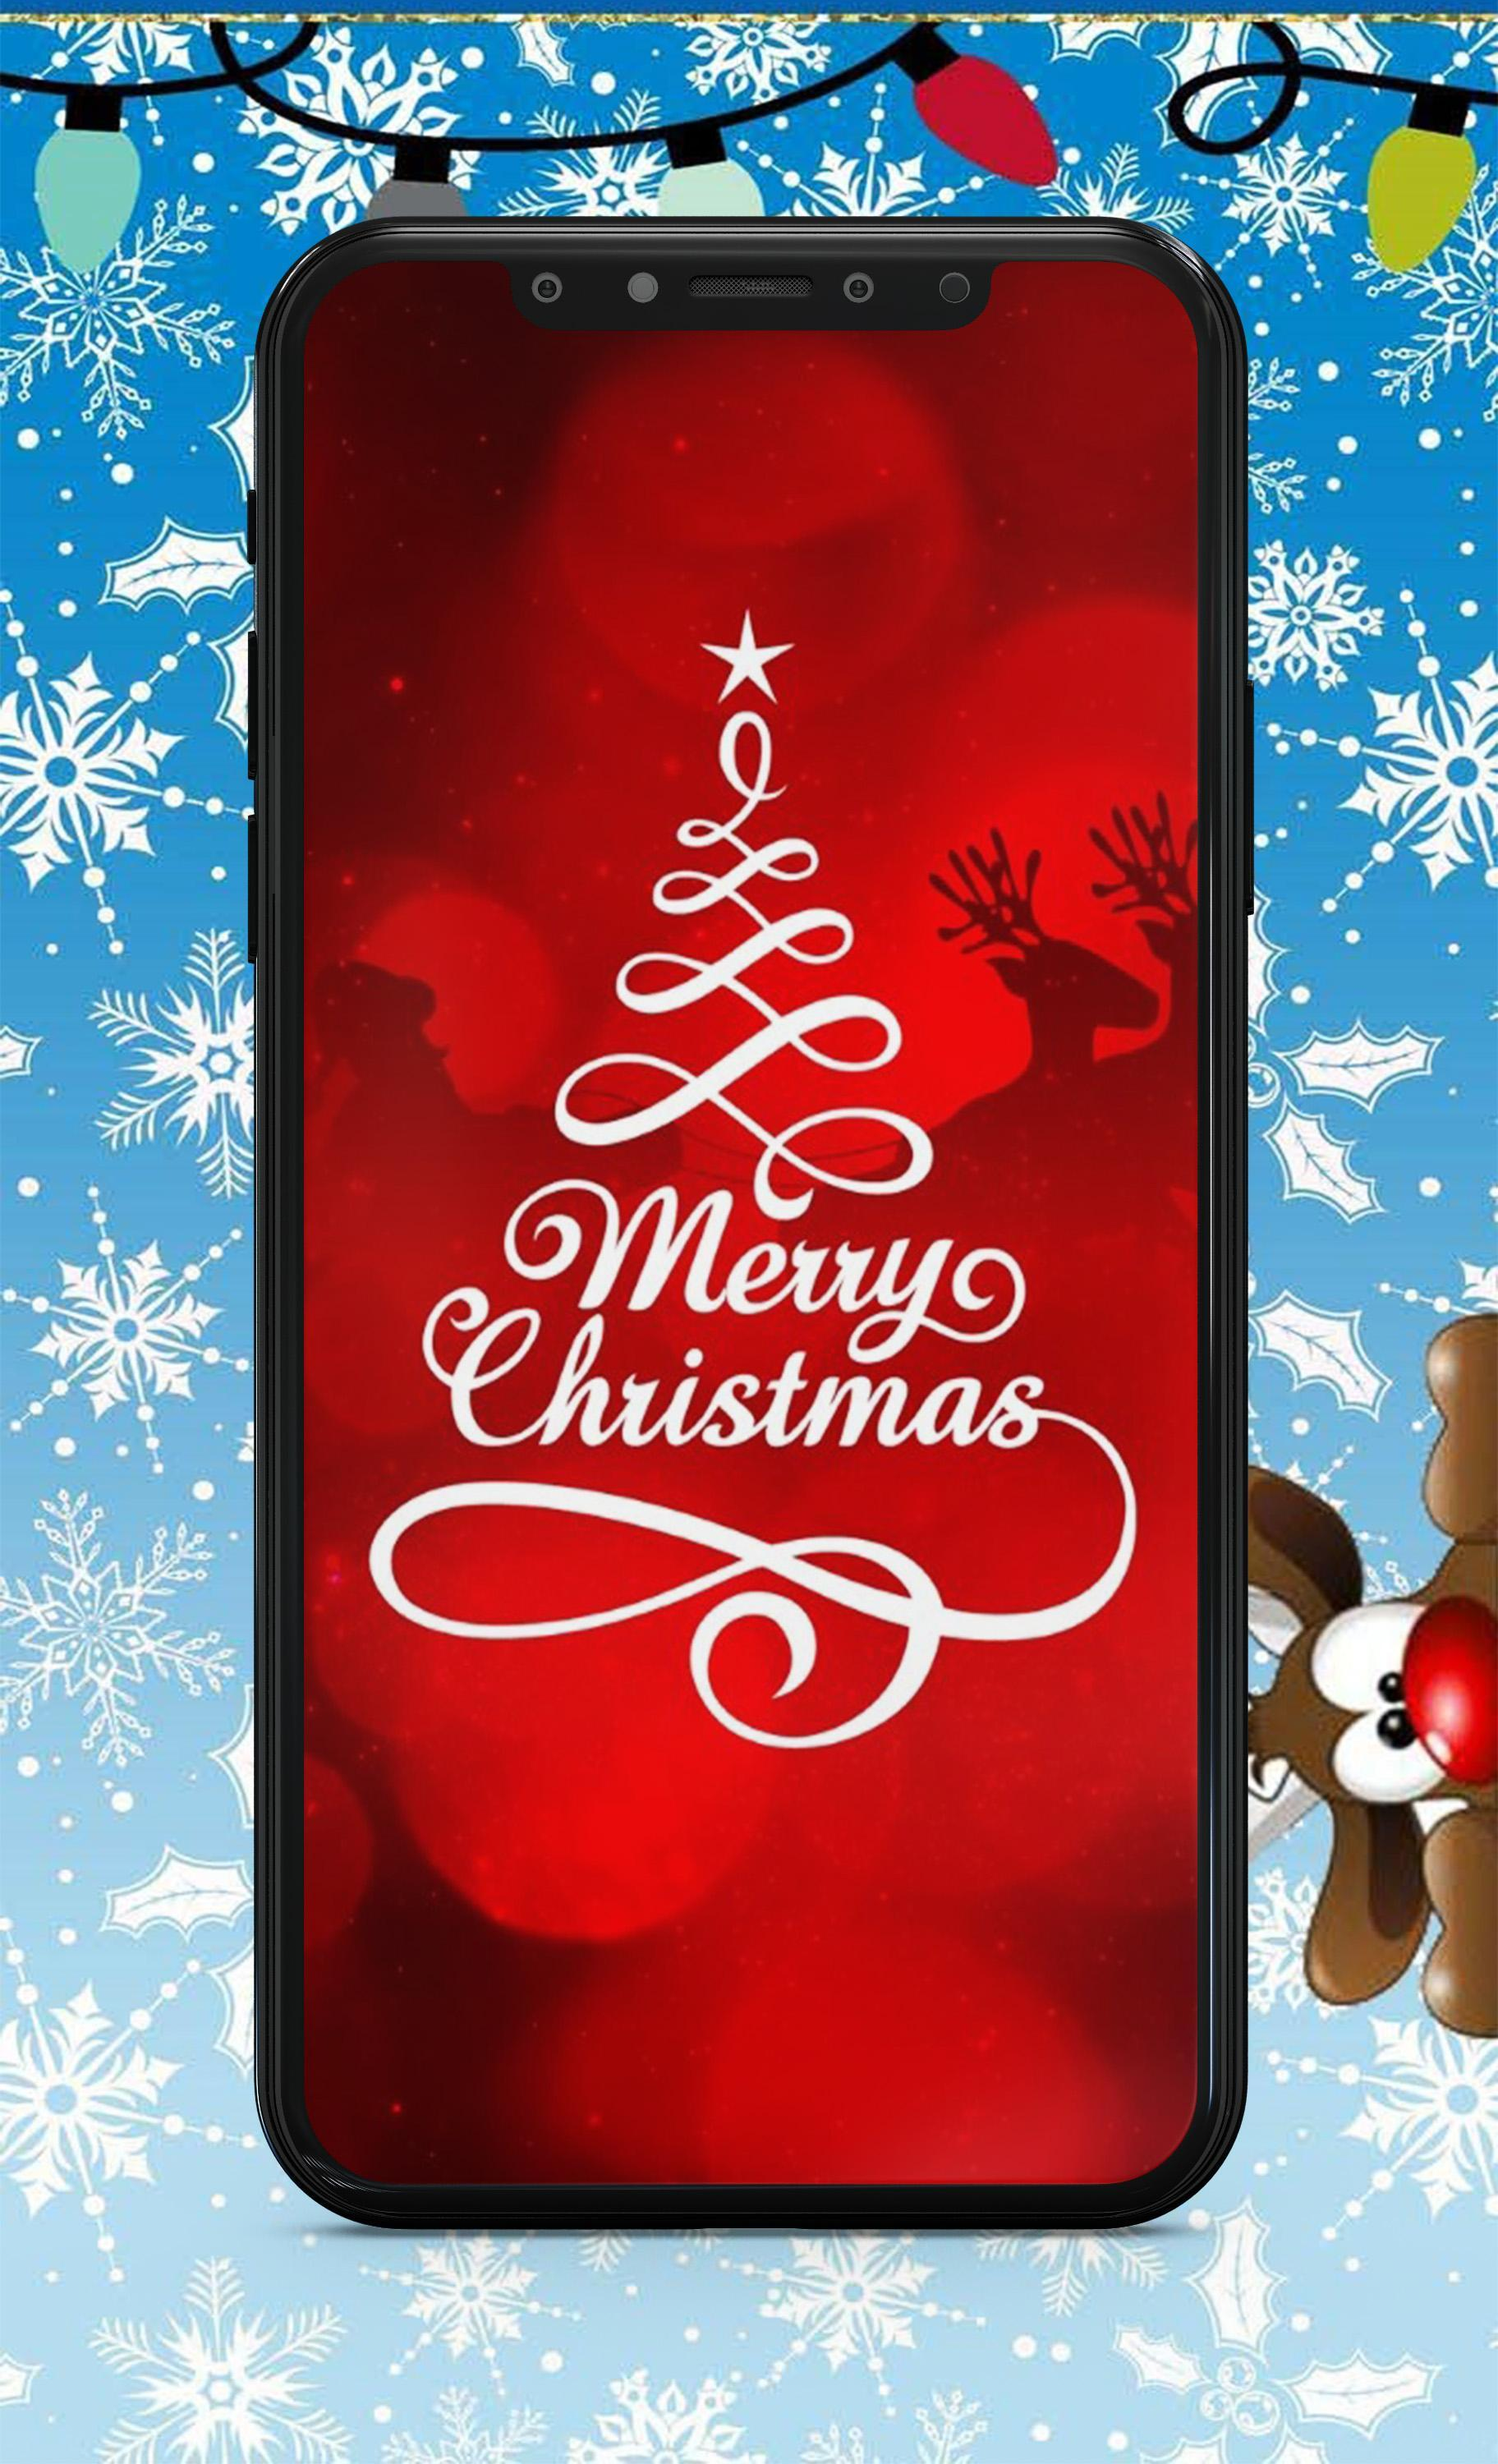 Christmas Wallpaper For Android APK Download